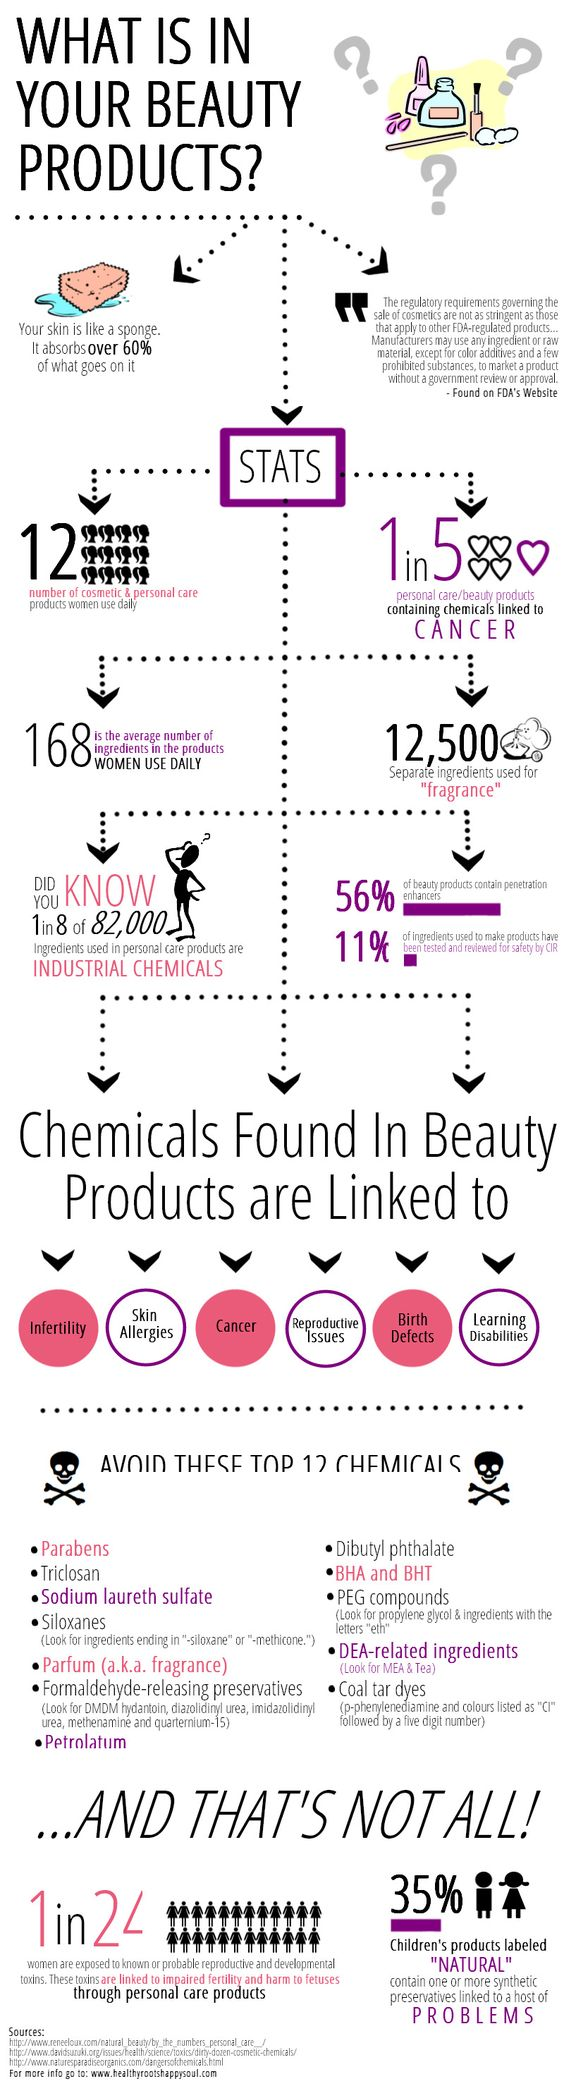 What is in your beauty chemicals? Find out how to revamp your personal/beauty care products here --> http://www.healthyrootshappysoul.com/world-rockin-stats-about-chemicals-in-beauty-products/: